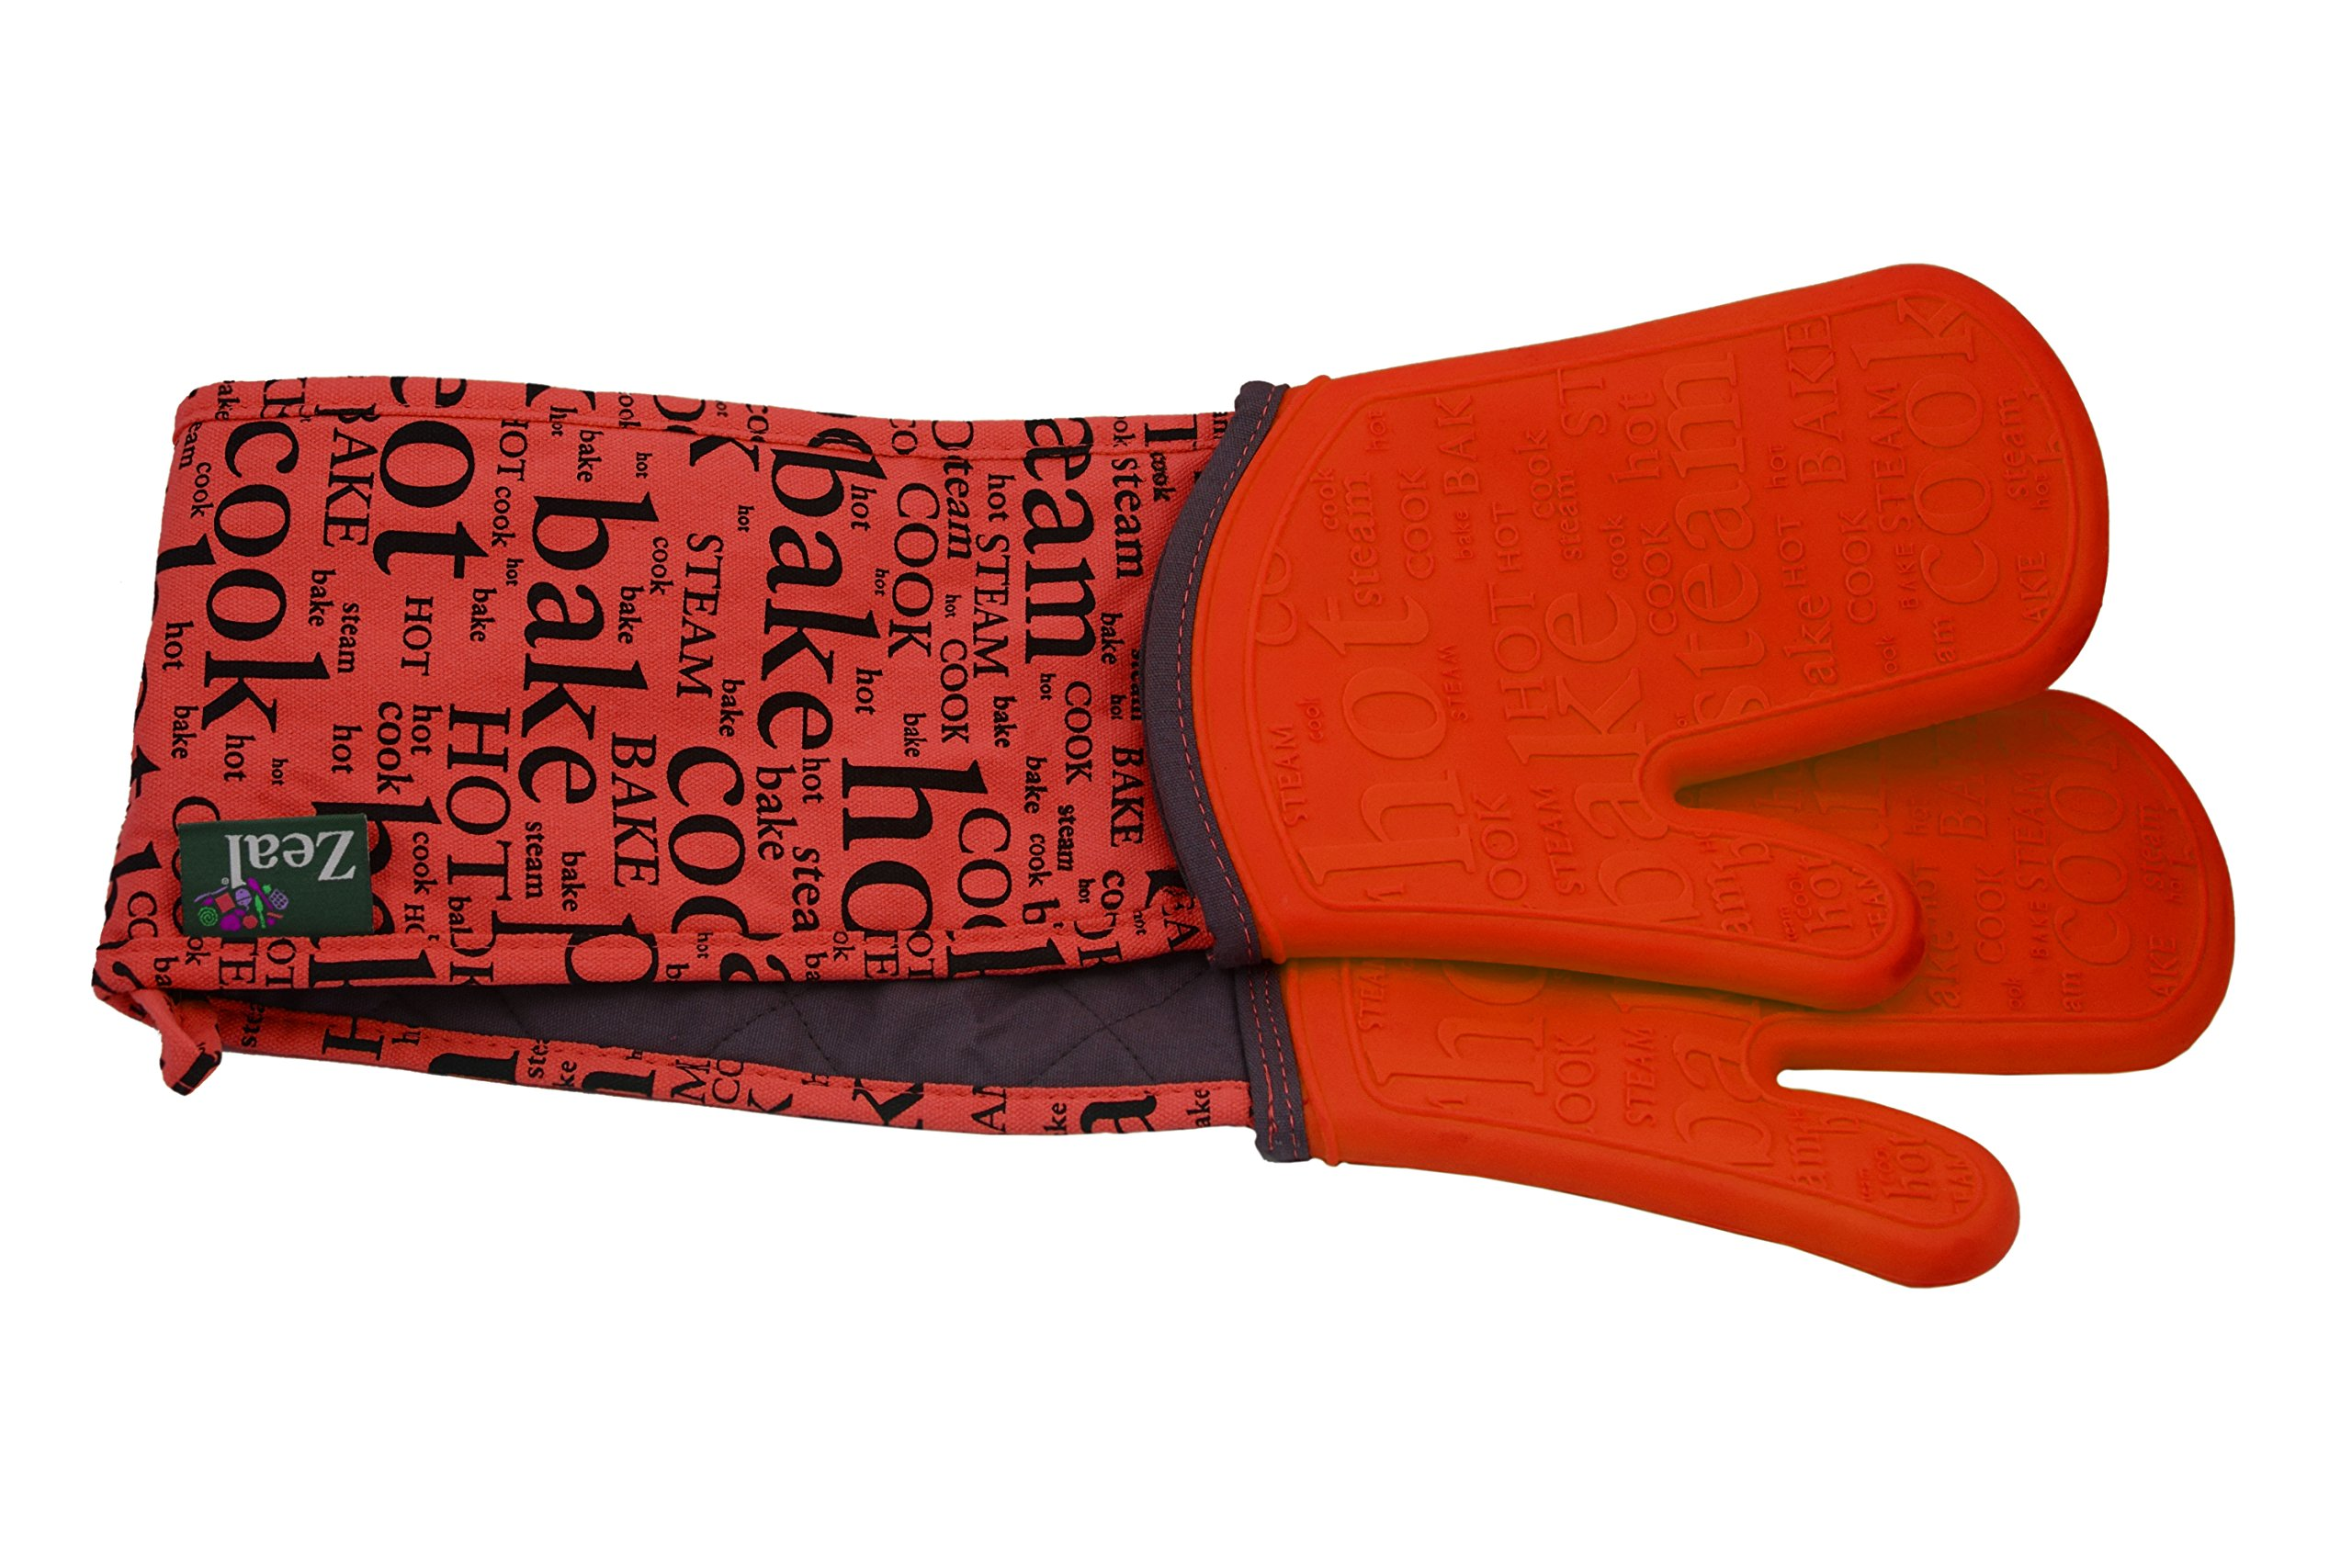 ZEAL Double Steam Stop Waterproof Silicone Oven Glove (Red) by Zeal (Image #1)